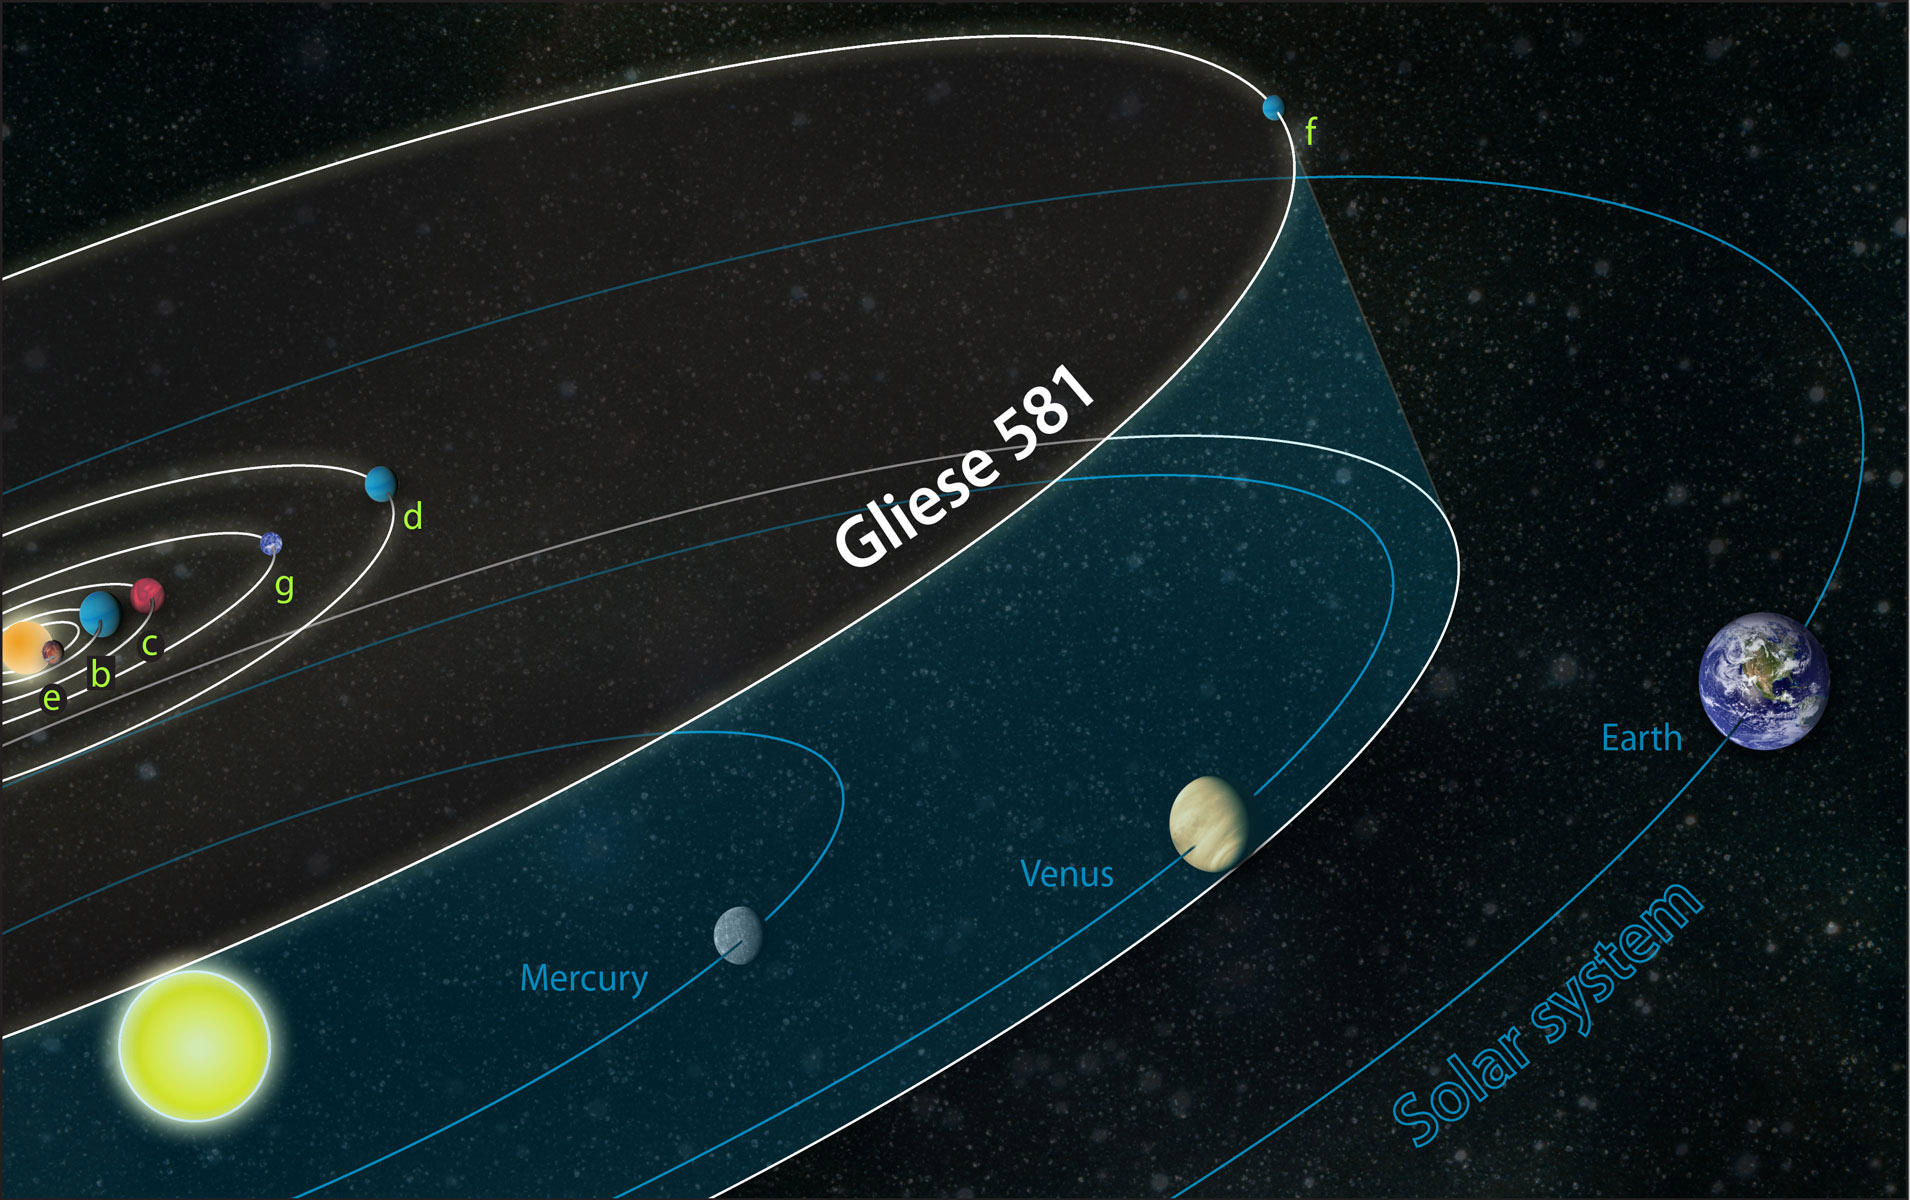 gliese 581d compared to earth - photo #15